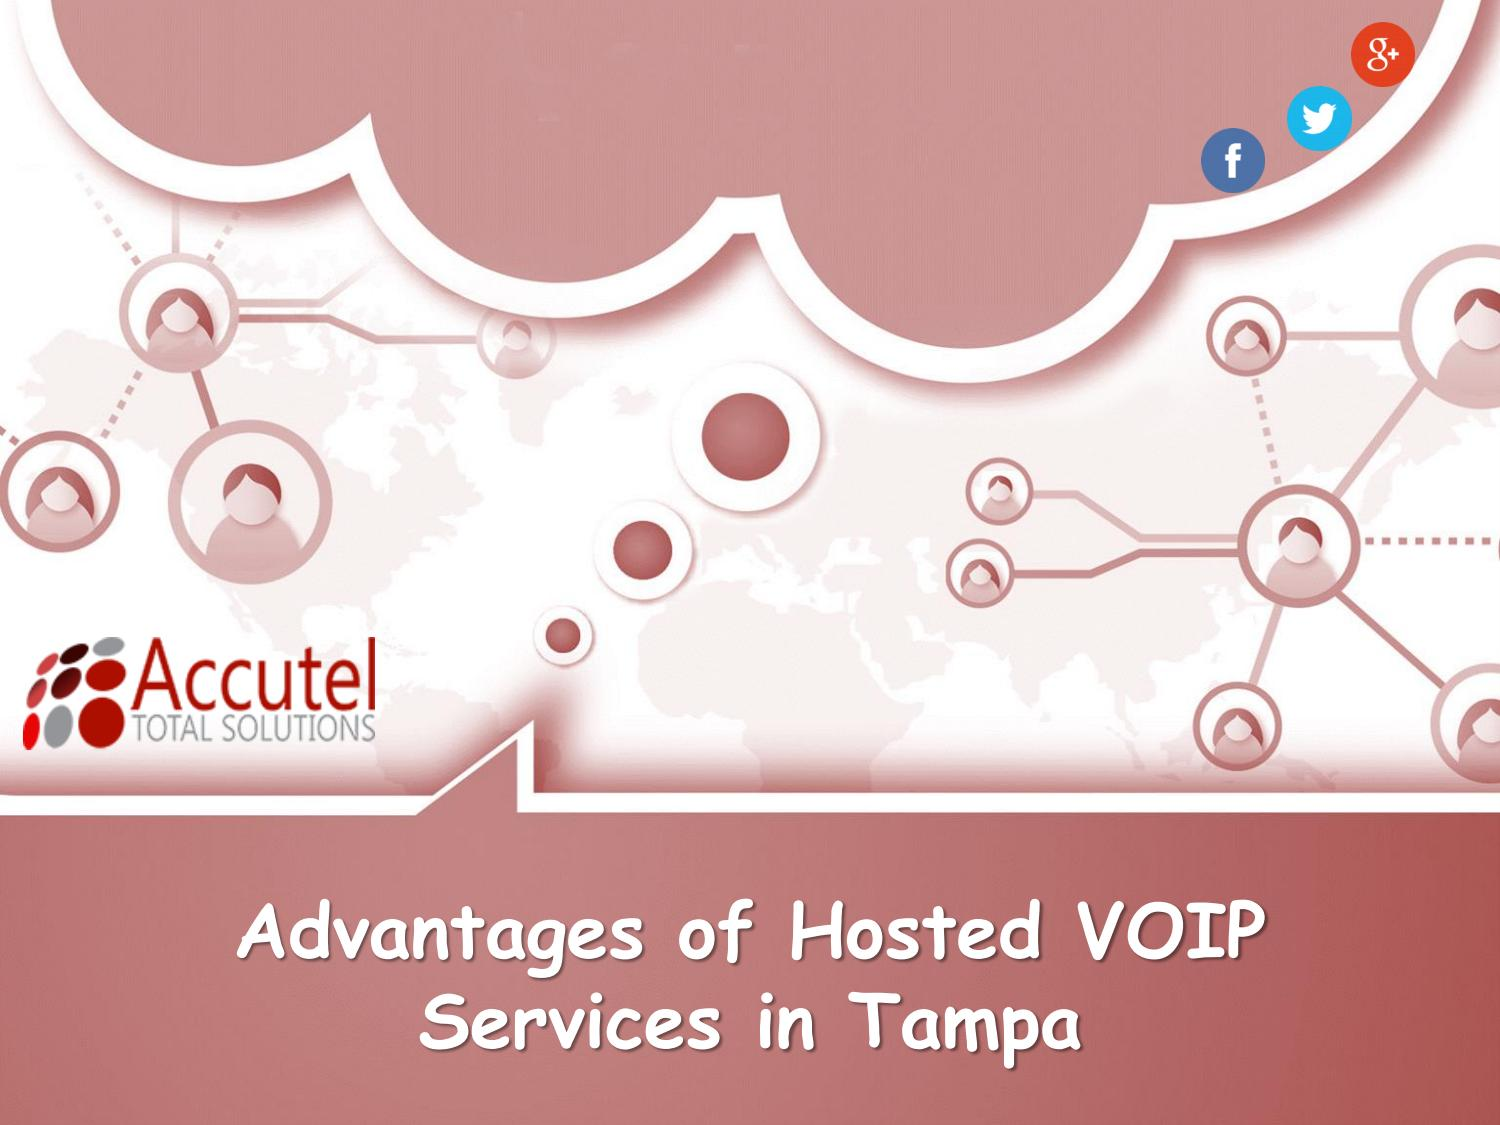 Advantages of Hosted VoIP Services in Tampa by Accutel Total